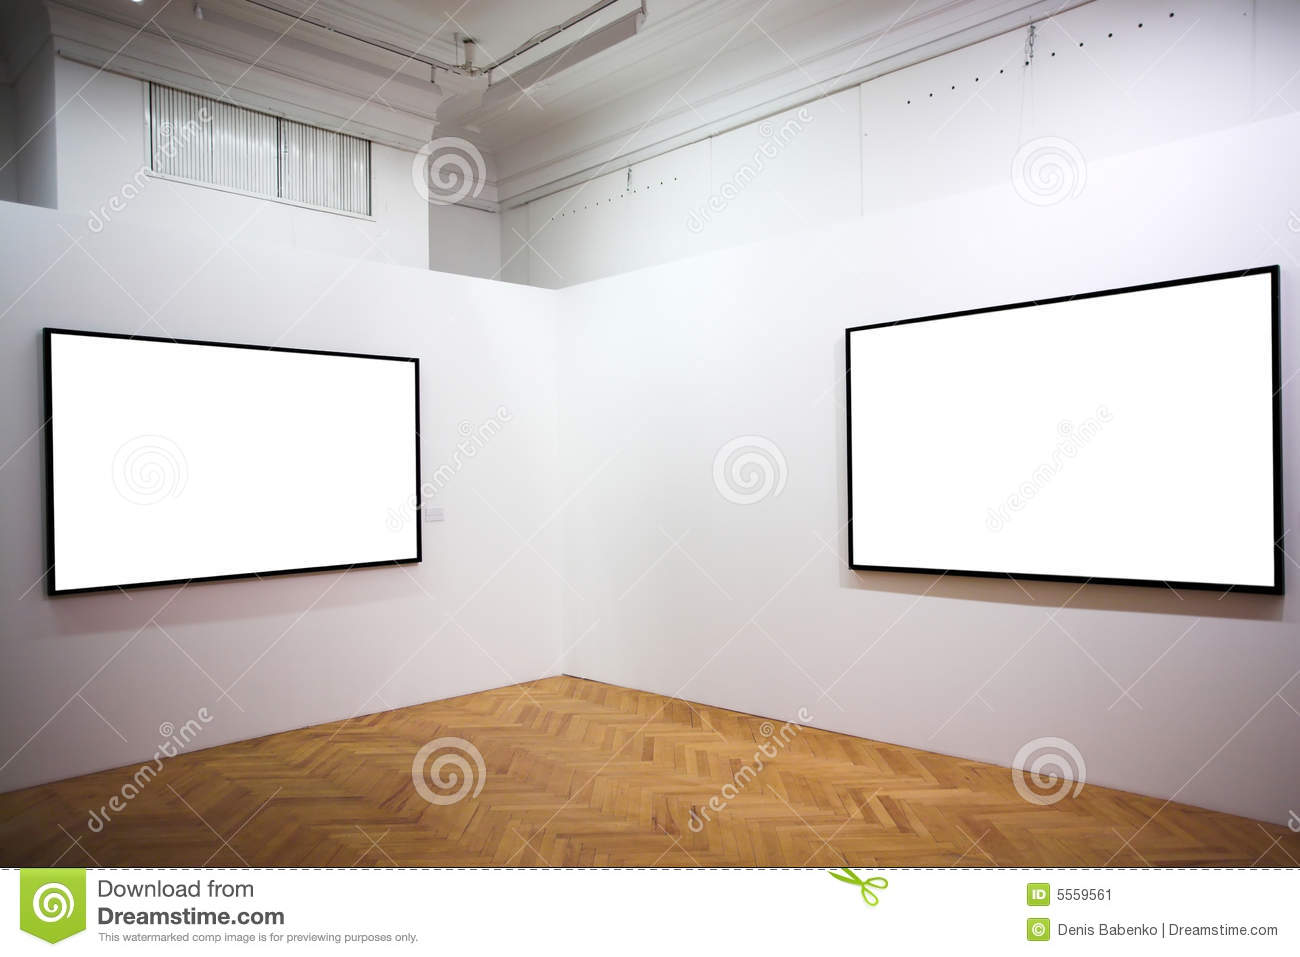 Two Empty Frames On White Wall Stock Image - Image of light, cadre ...